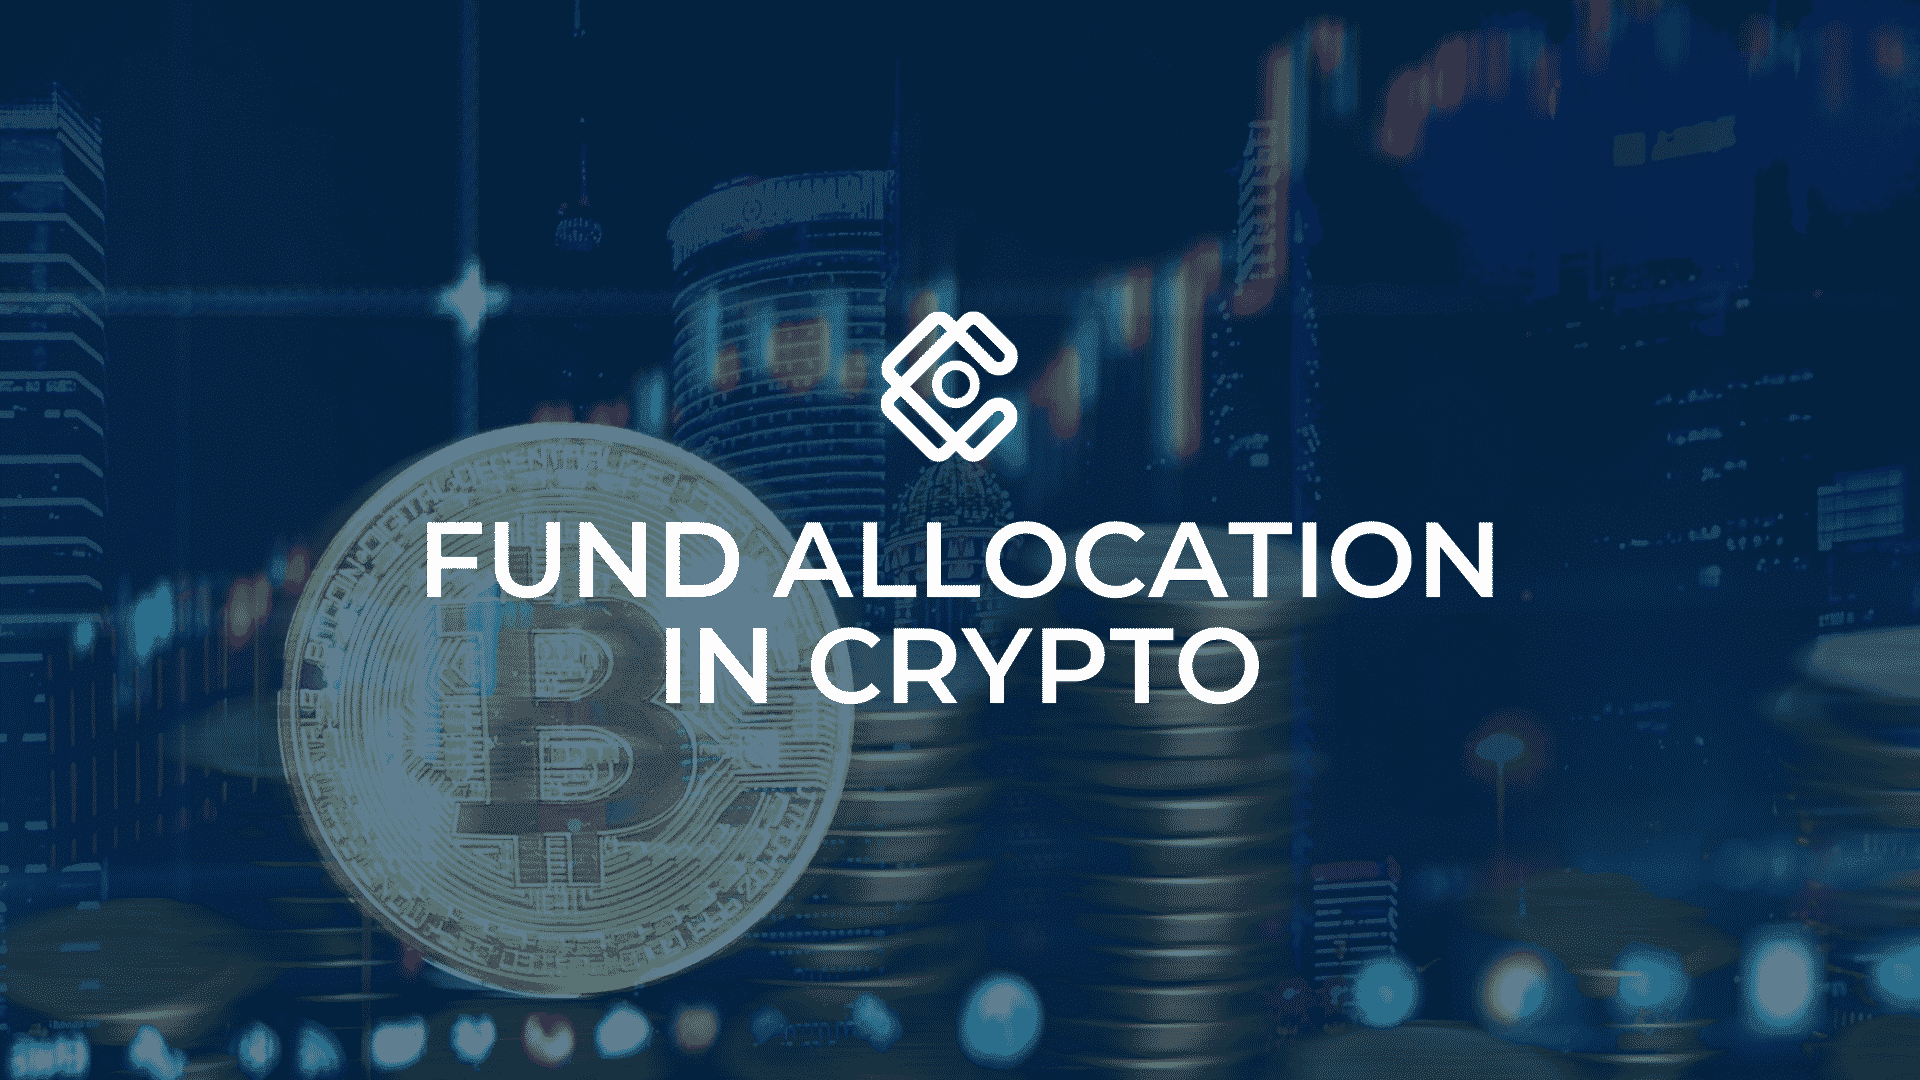 Fund Allocation in Crypto